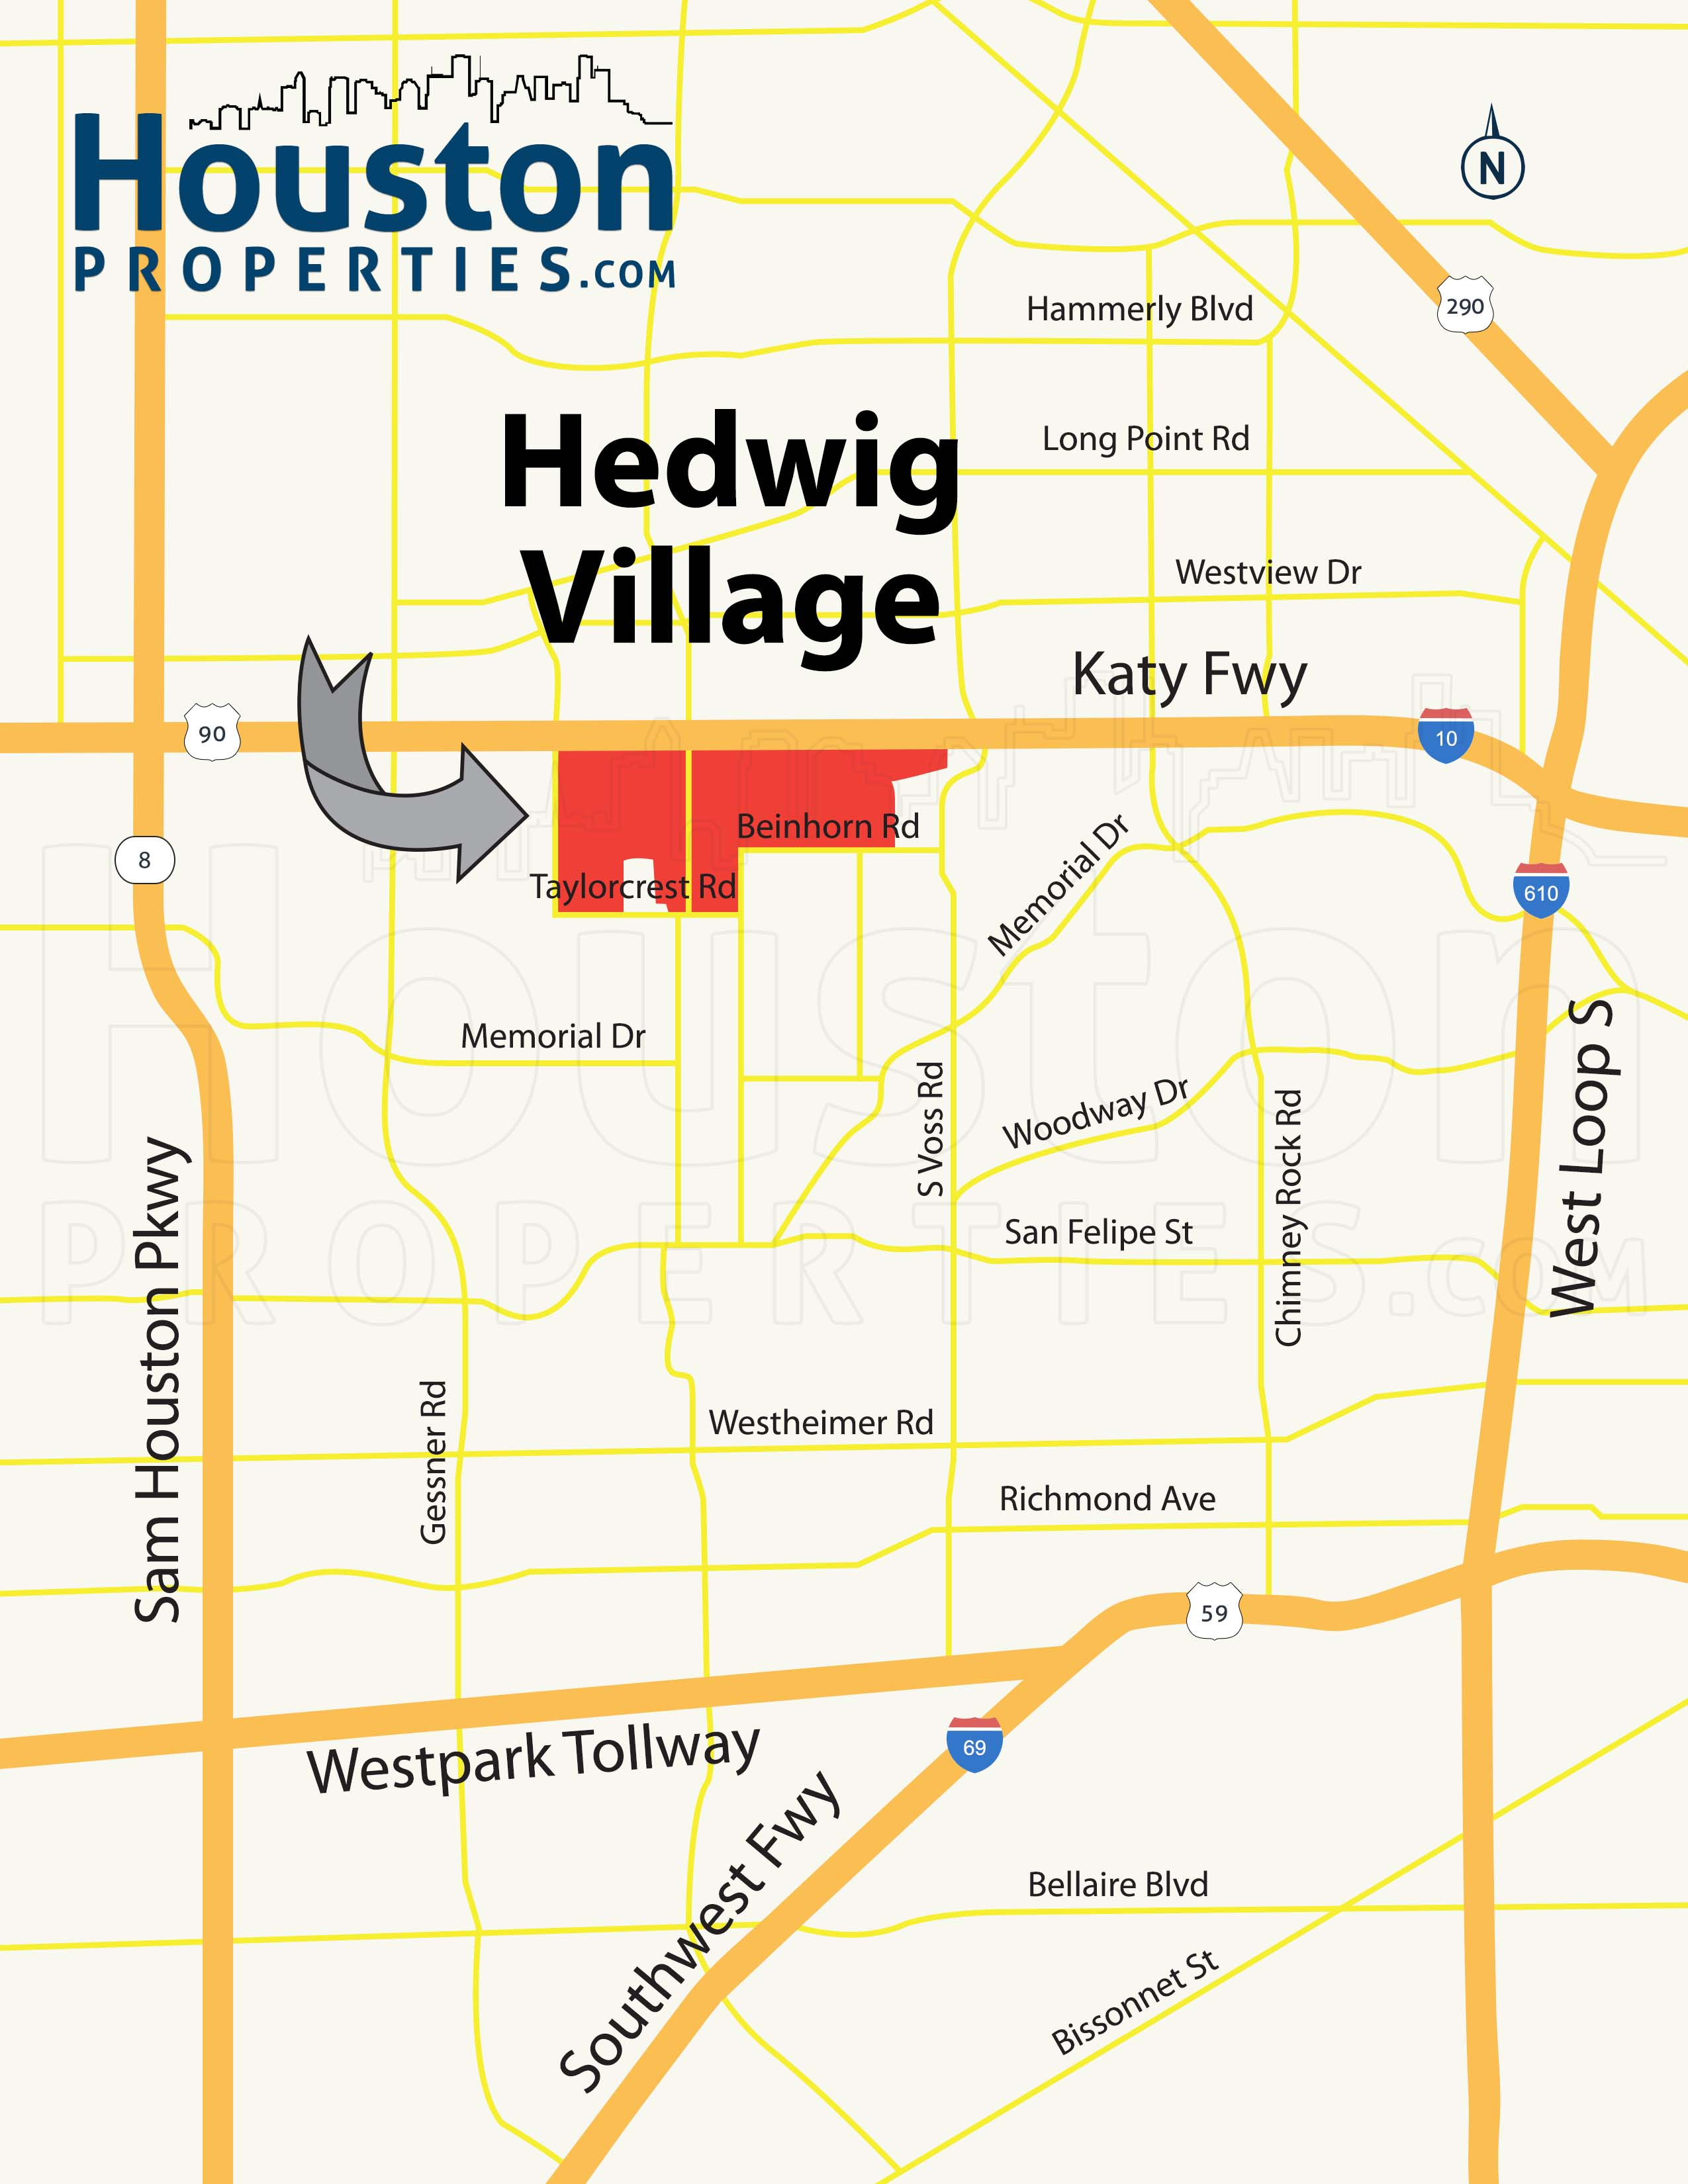 Hedwig Village Houston map